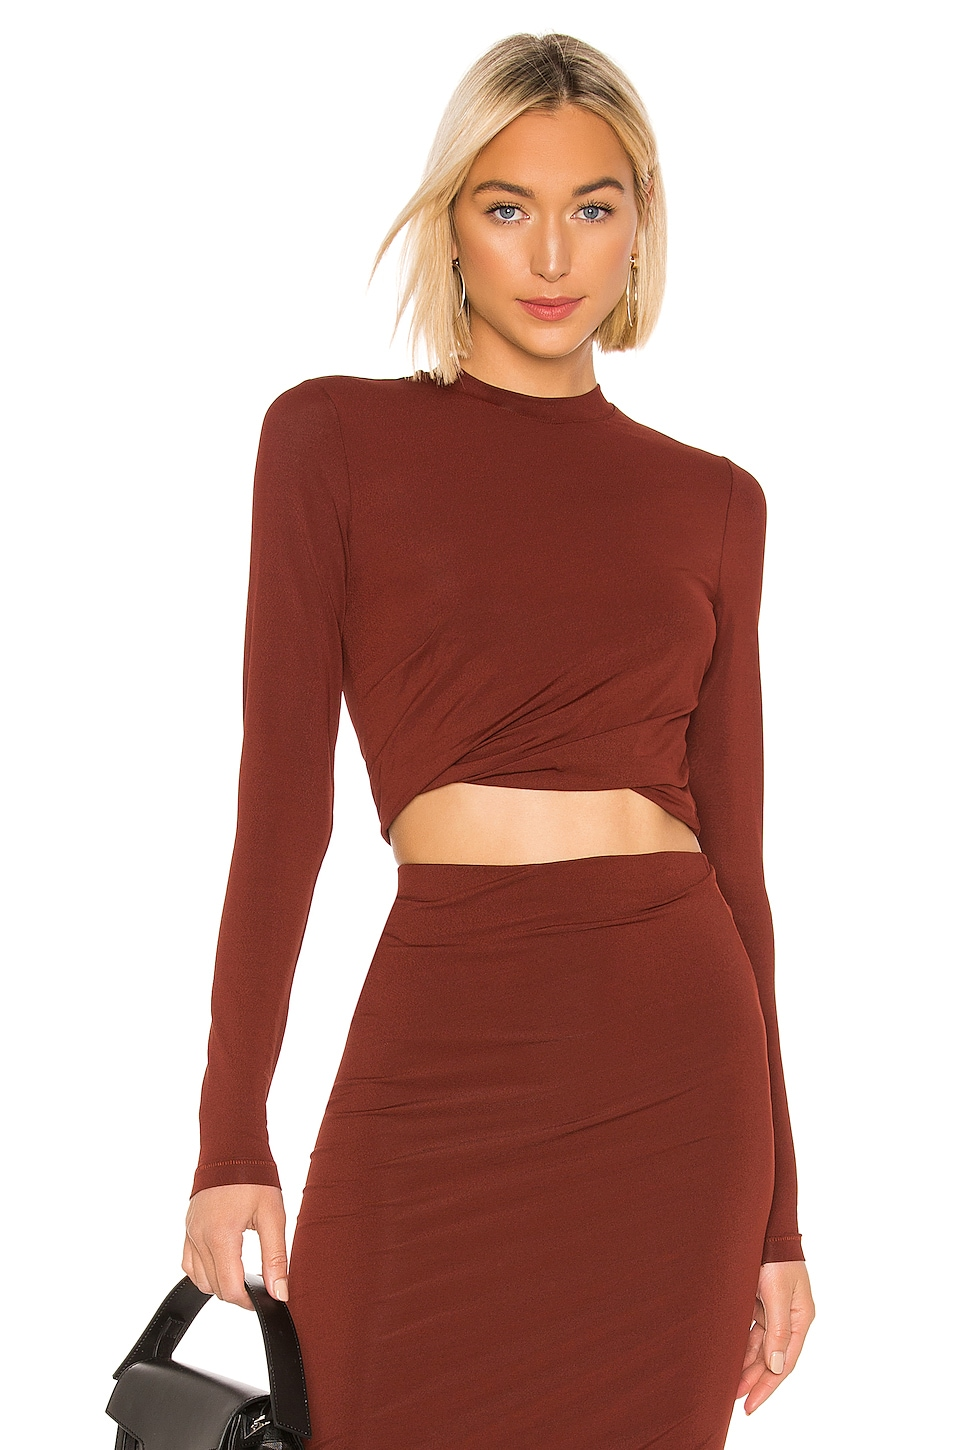 T by Alexander Wang Crepe Jersey Twisted Long Sleeve Top in Rust